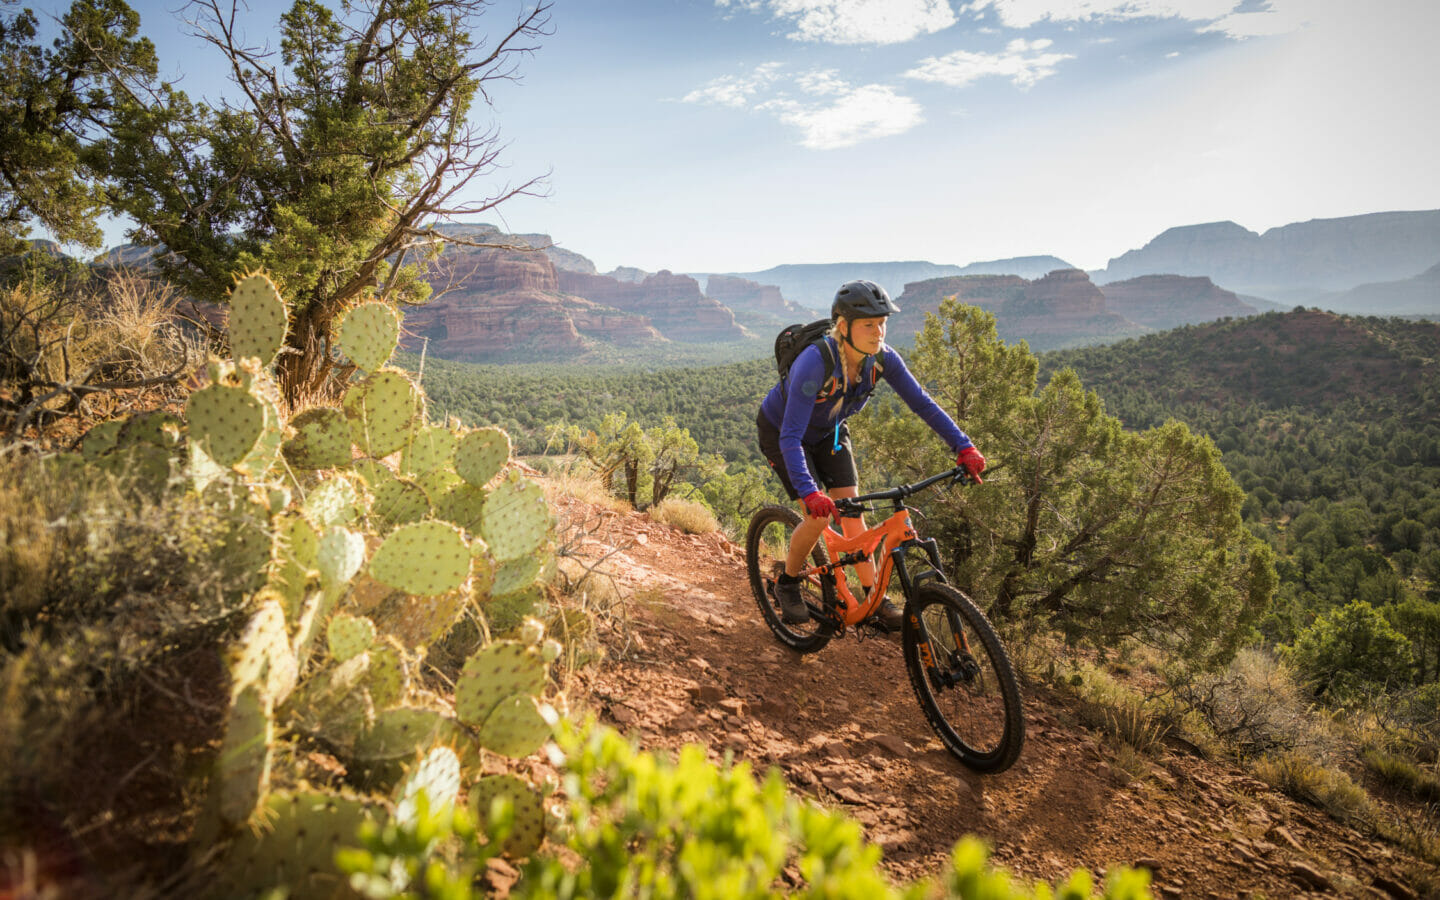 Woman Mountain Biker with Cactus and Vista